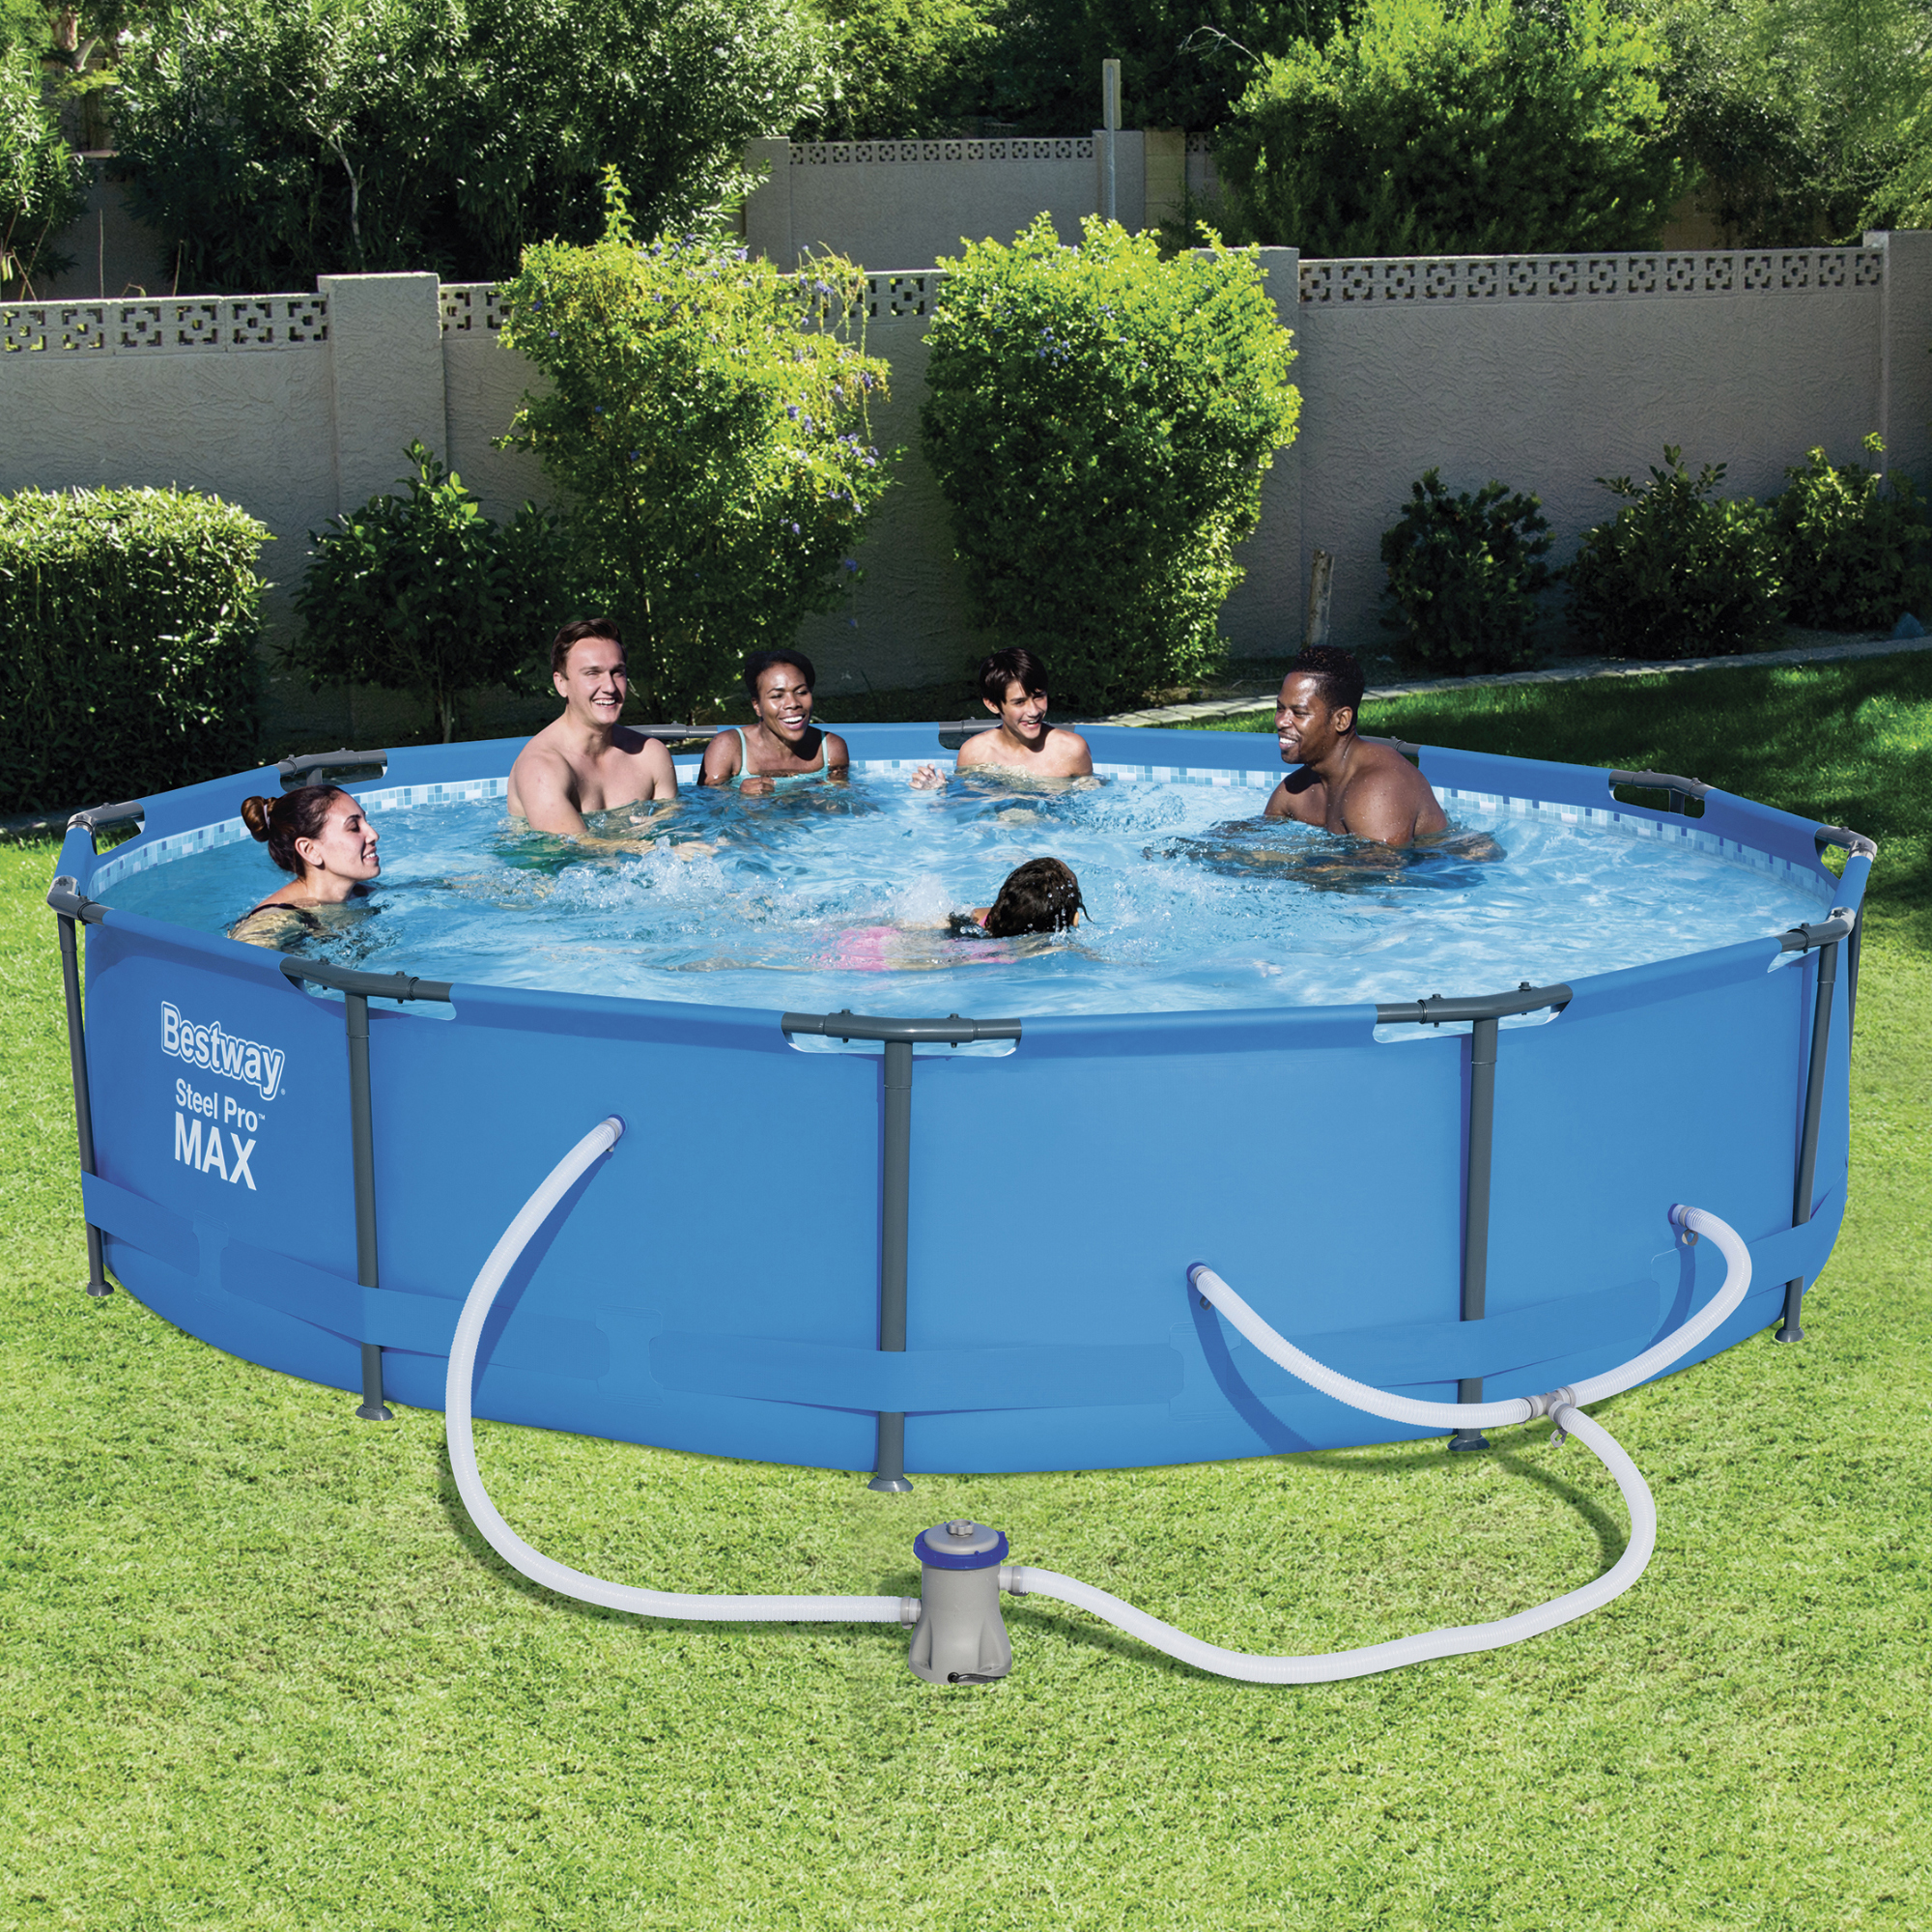 "Bestway Steel Pro MAX 12' x 30"" Frame Swimming Pool Set by Bestway"